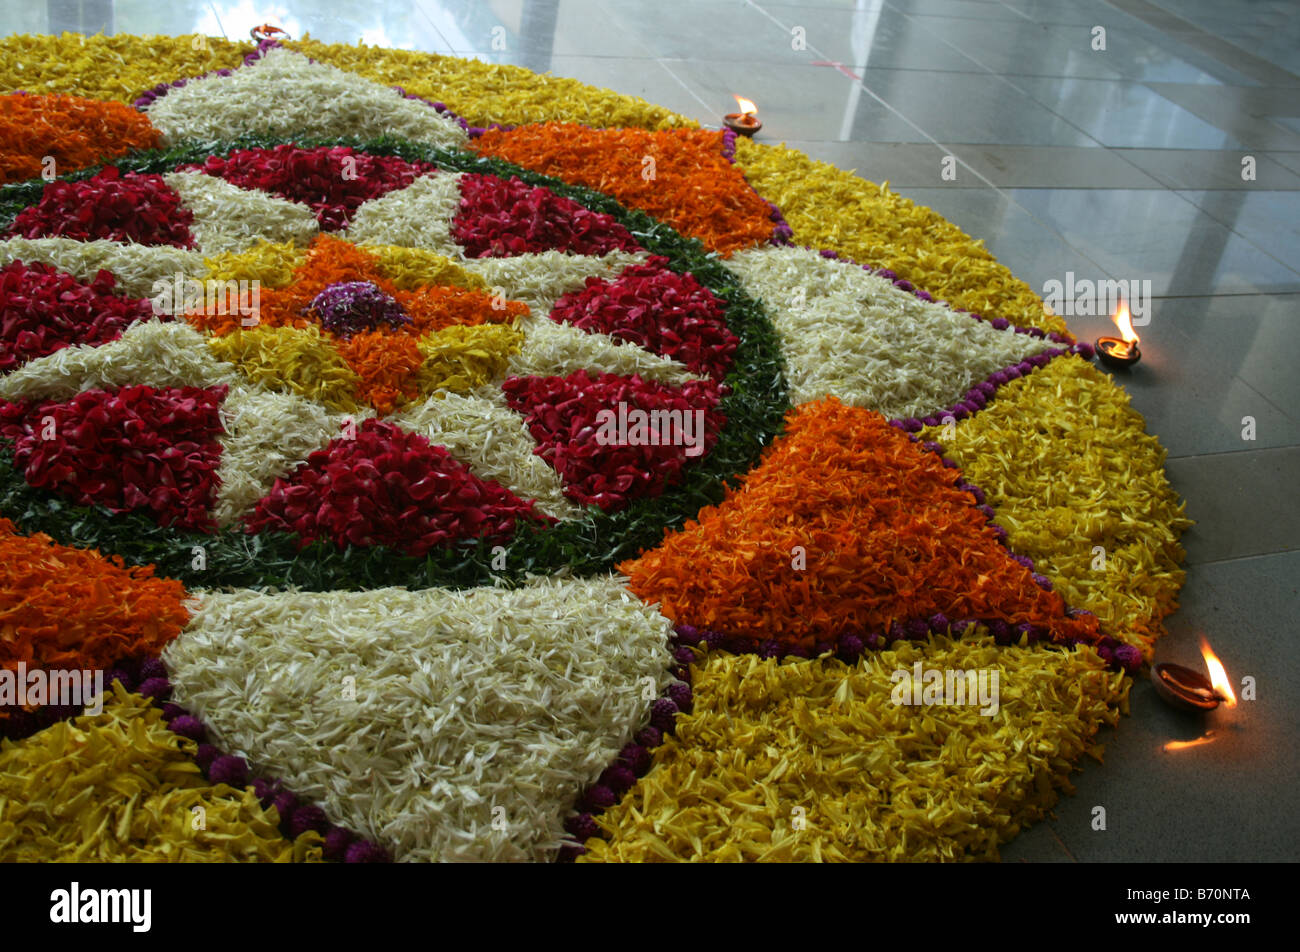 Beautiful floral decoration with lamps during popular Kerala festival Onam which marks the return of King Maveli - Stock Image